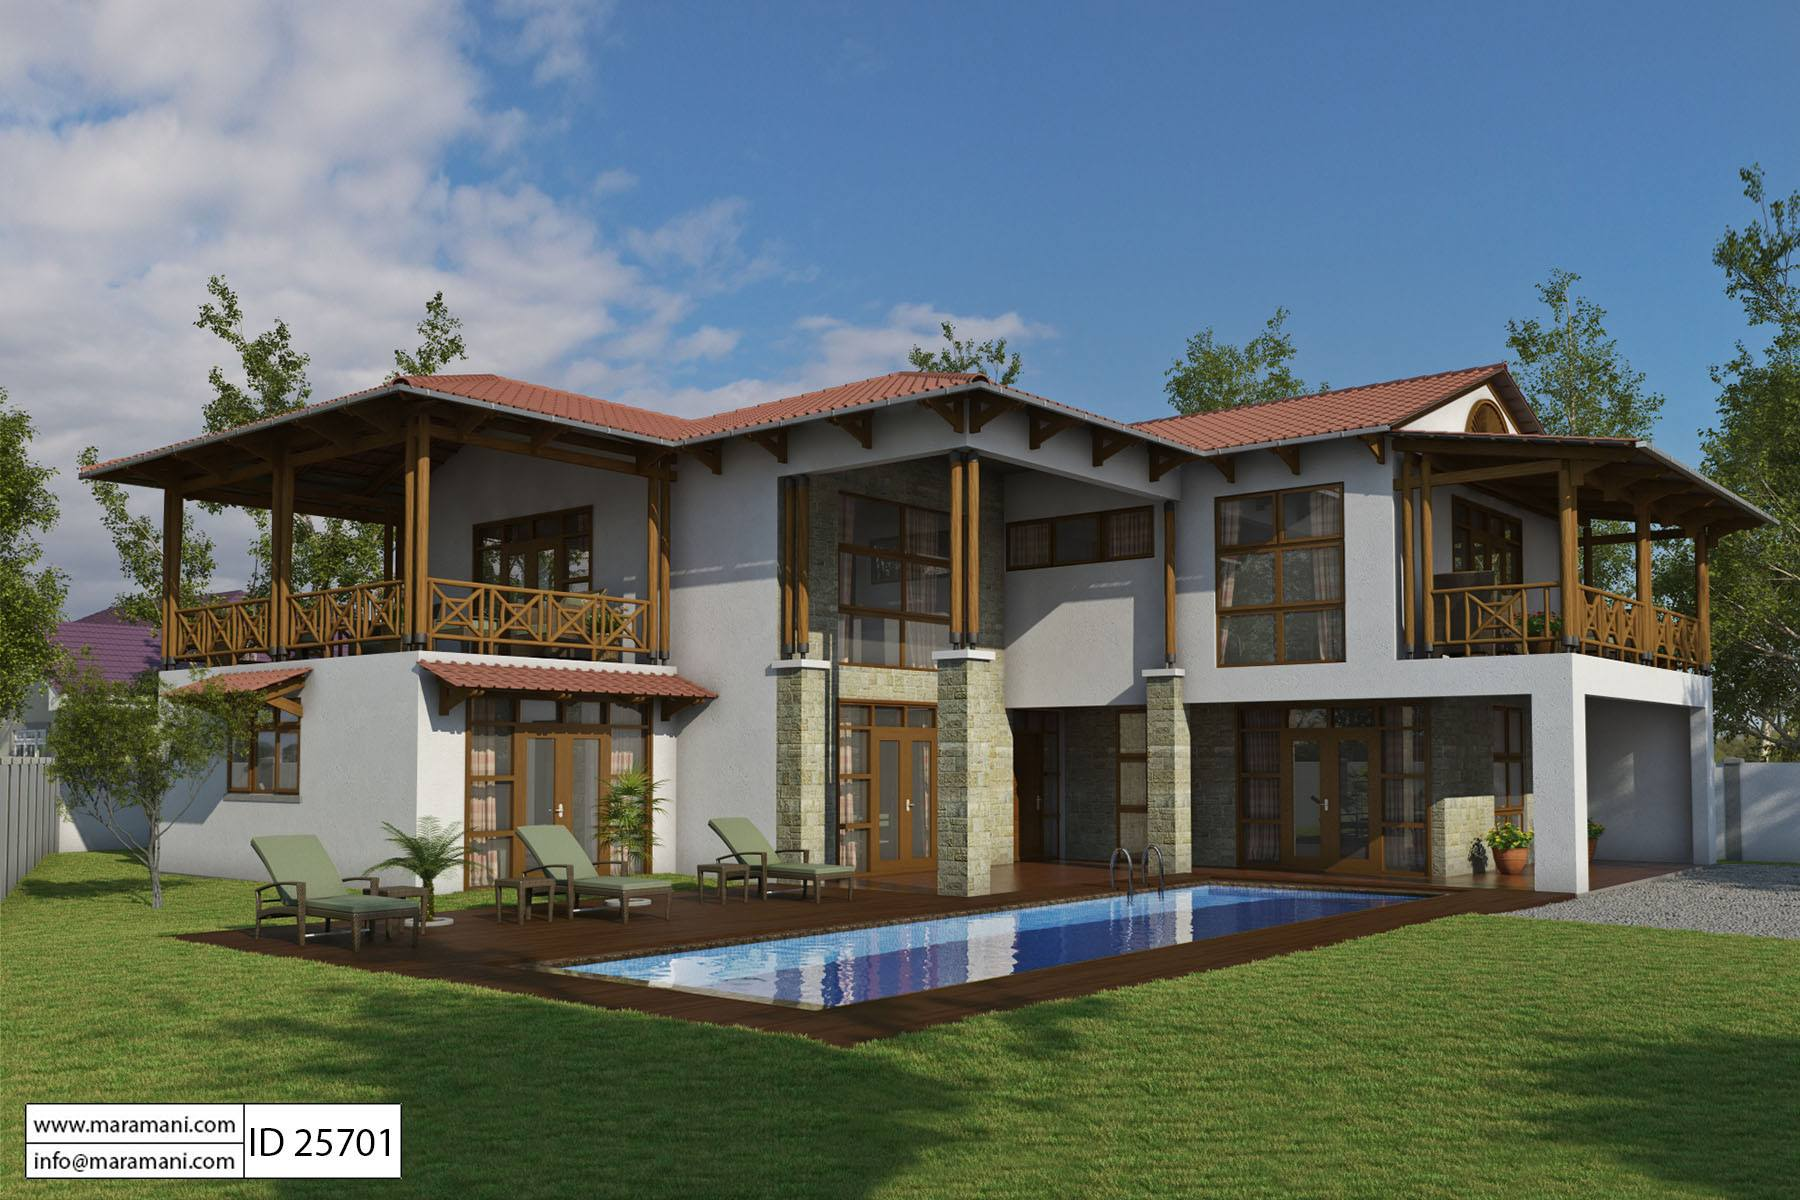 Bali style house with 5 bedrooms id 25701 house plans for 5 bedrooms